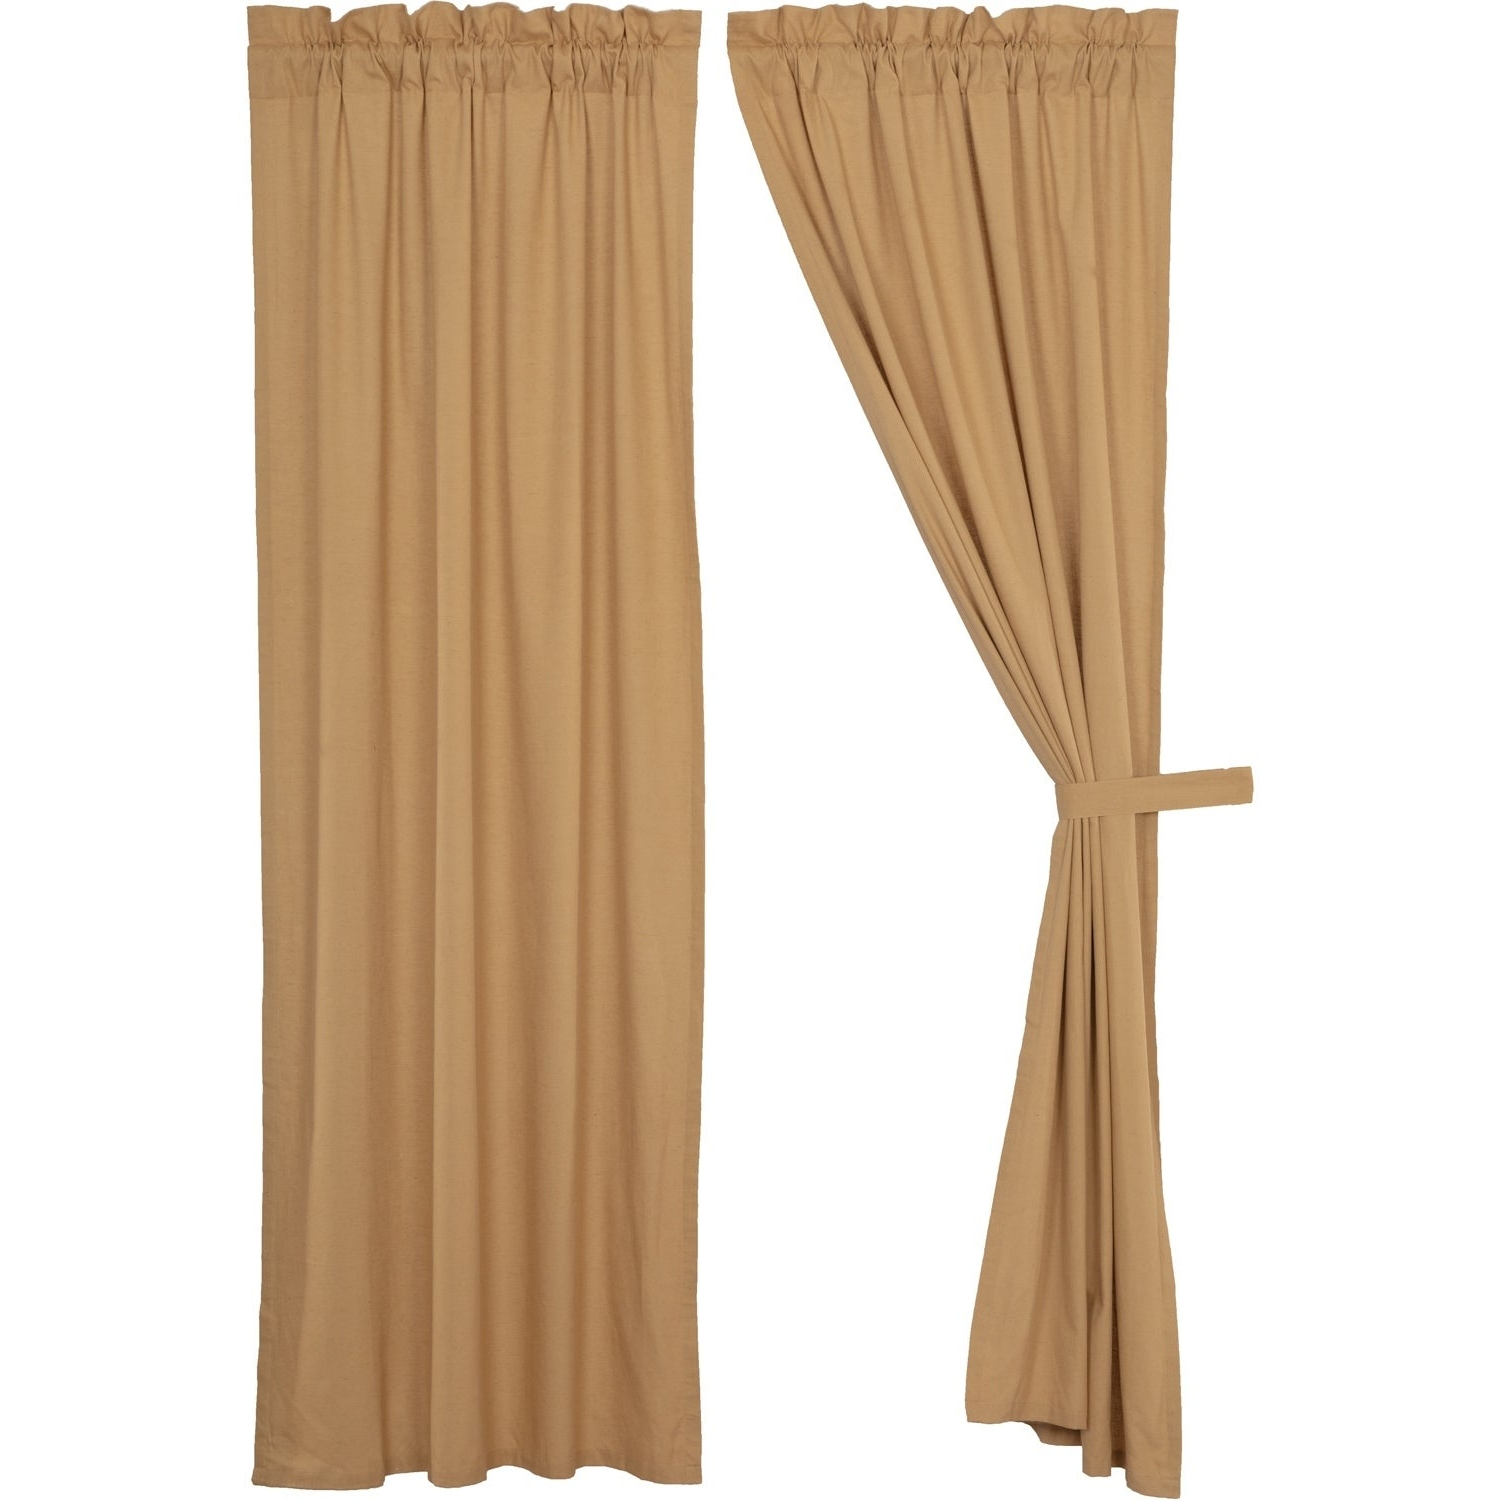 Preferred Simple Life Flax Tier Pairs With Regard To Details About Farmhouse Curtains Vhc Simple Life Flax Panel Pair Rod (View 10 of 20)